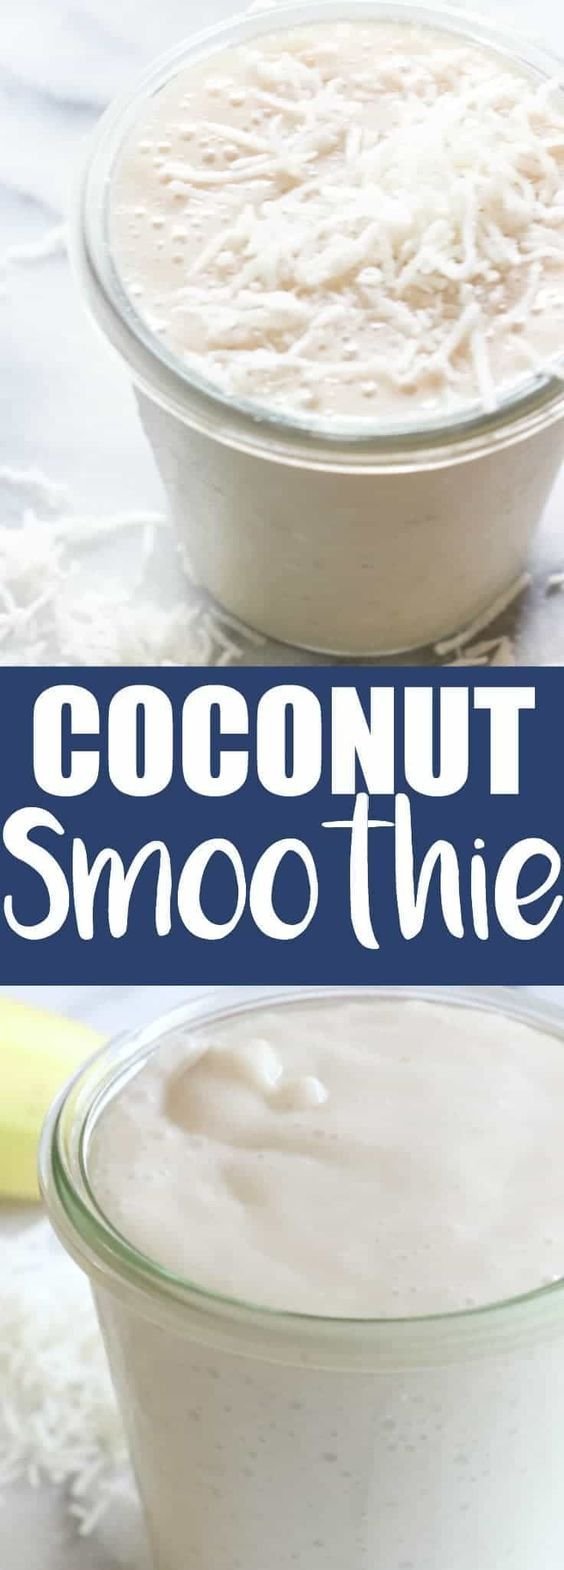 Coconut Smoothie.  This smoothie is loaded with coconut flavor!  Made with coconut milk and other natural ingredients, this is guaranteed the best way to start the day!  Good Morning!!  Let's start the day off right shall we?  And by that I mean let's start it off with a glass full of coconut smoothie.  Out of...Read More